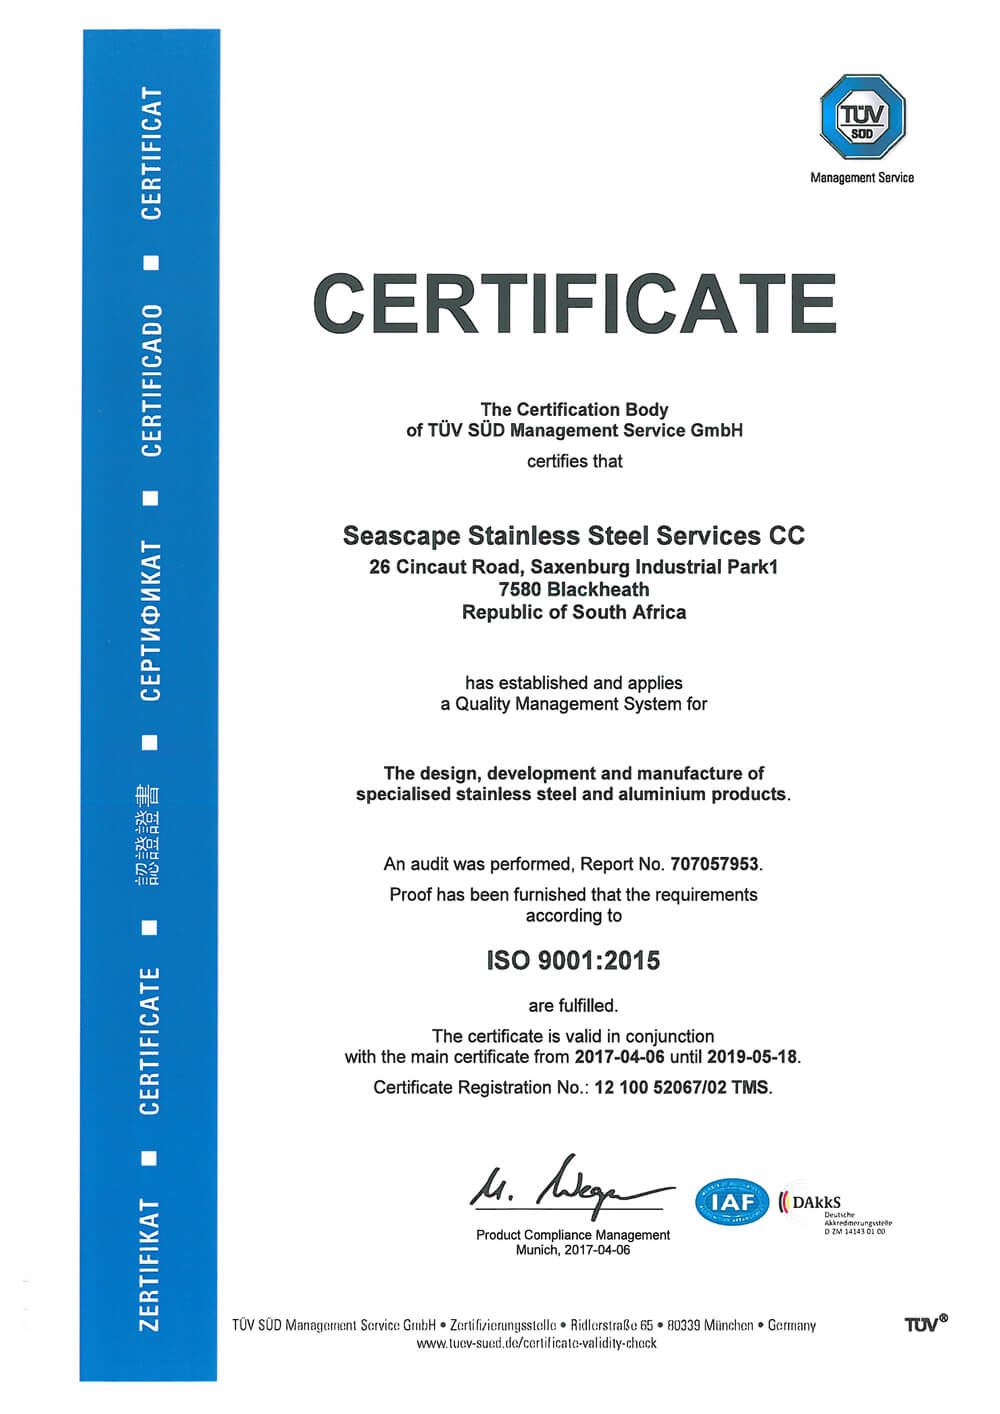 Seascape Stainless Steel Services TUV ISO certificate